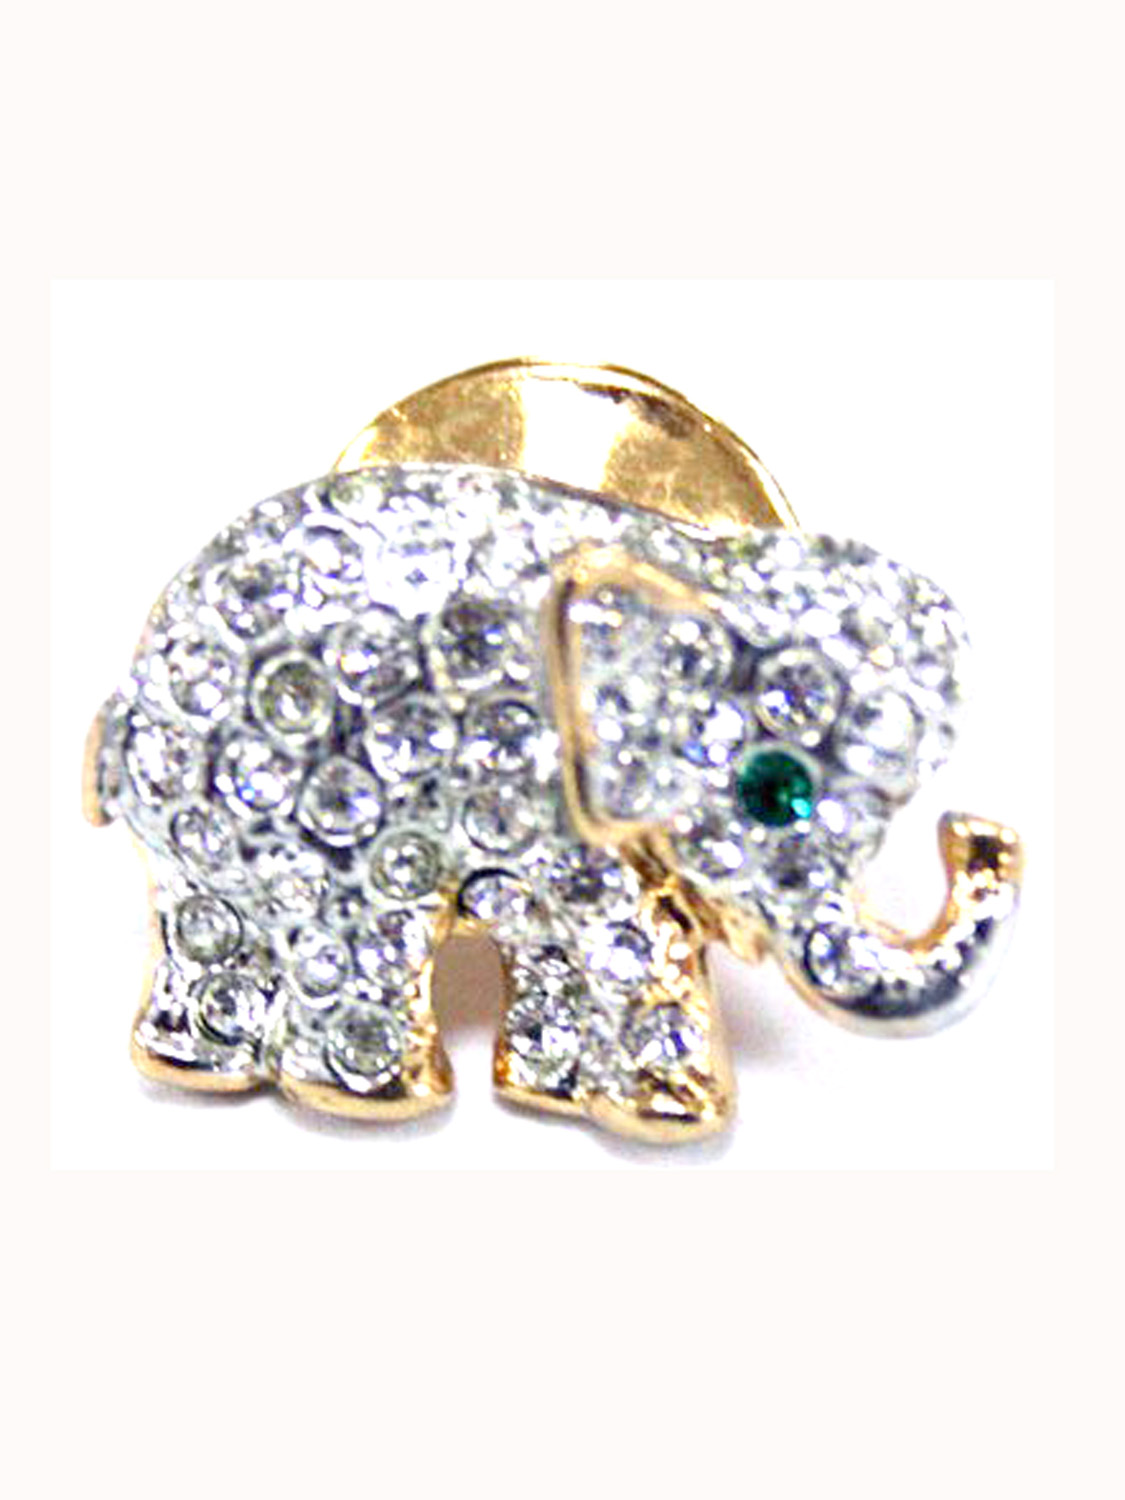 Elephant Brooch Pin with Green Stone Eyes by